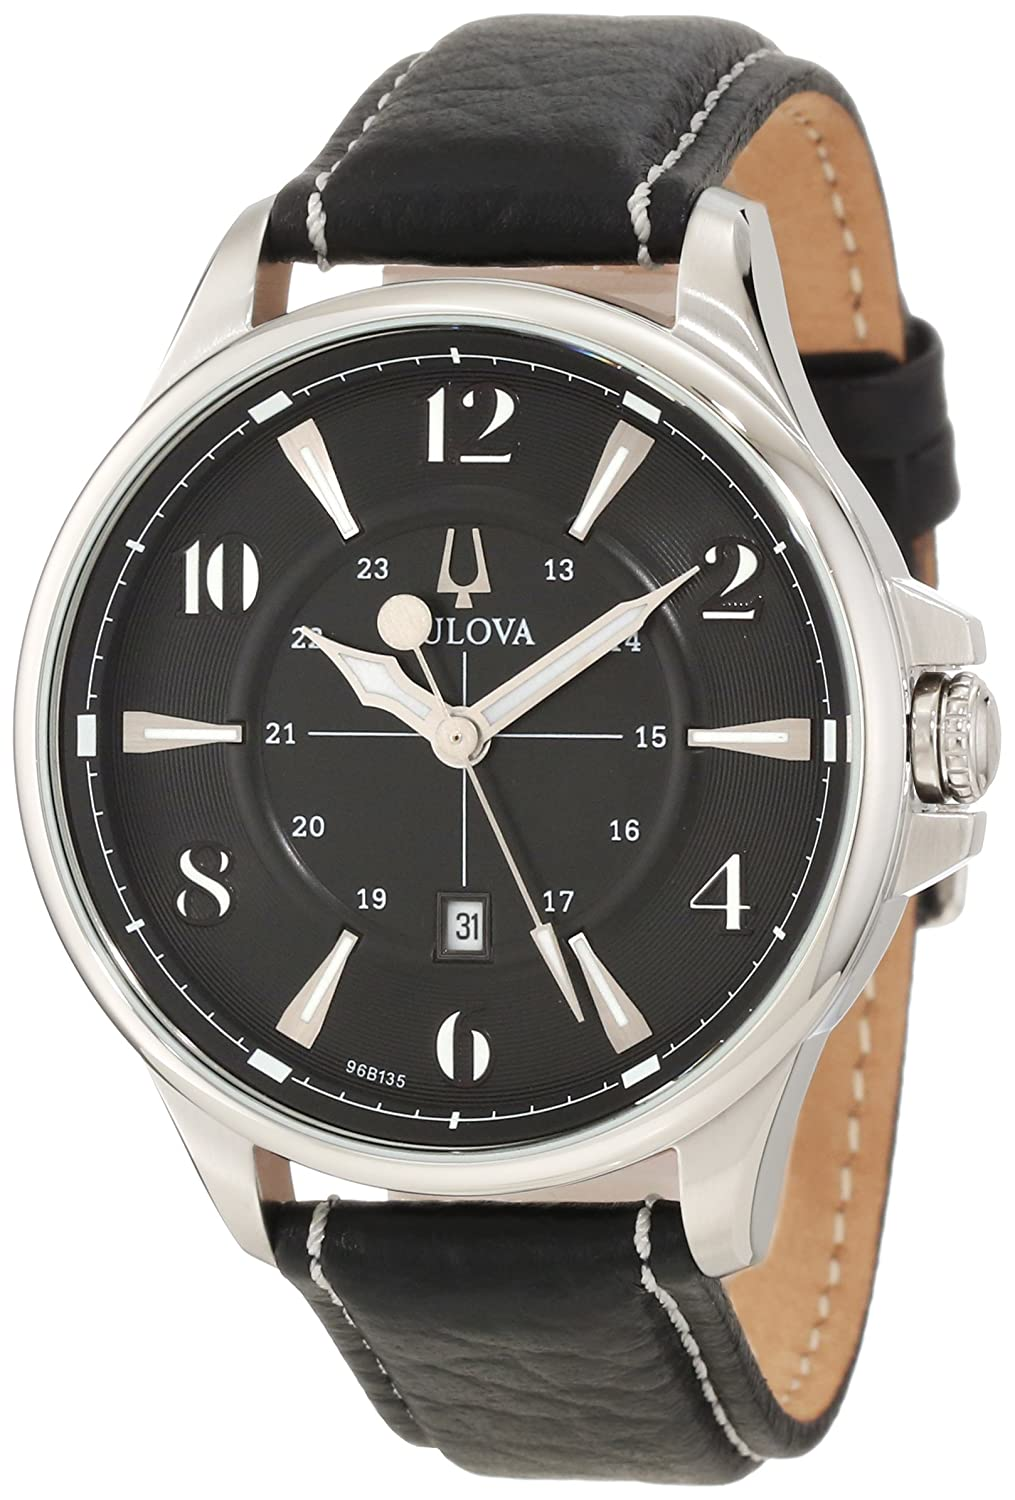 Bulova Men's 96B135 Adventurer Strap Watch $112.08